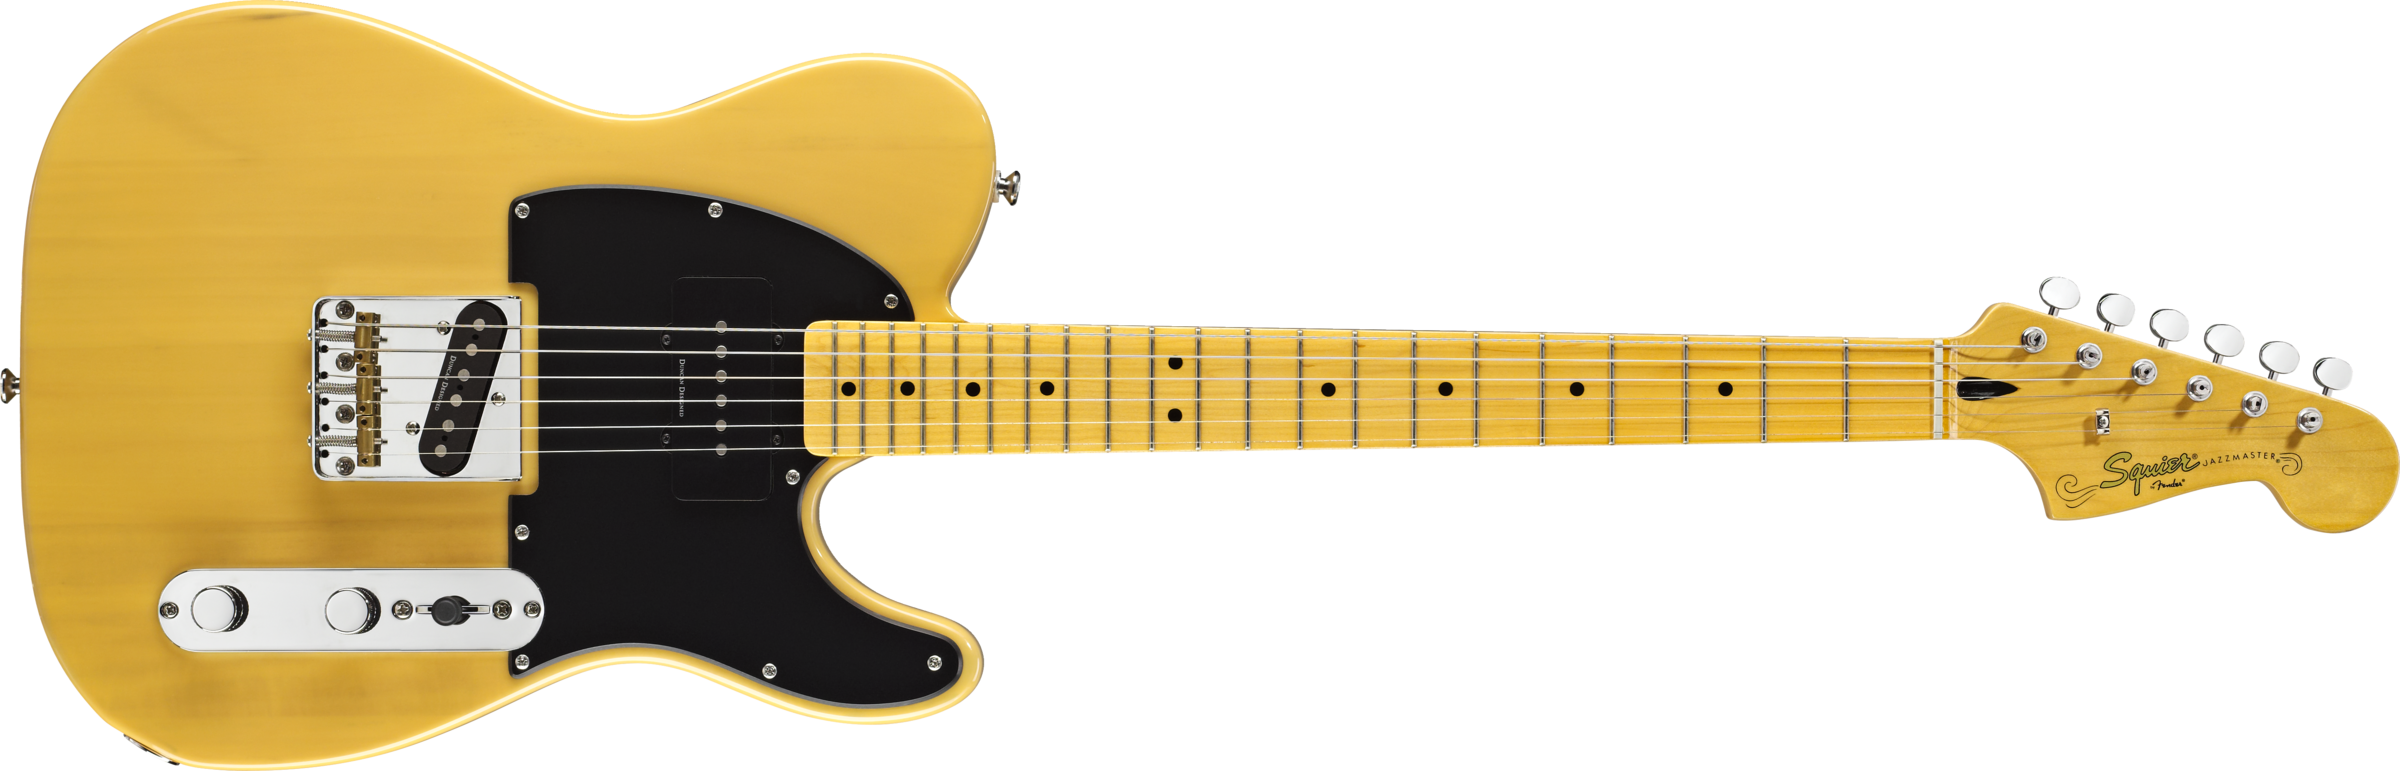 squier image .png